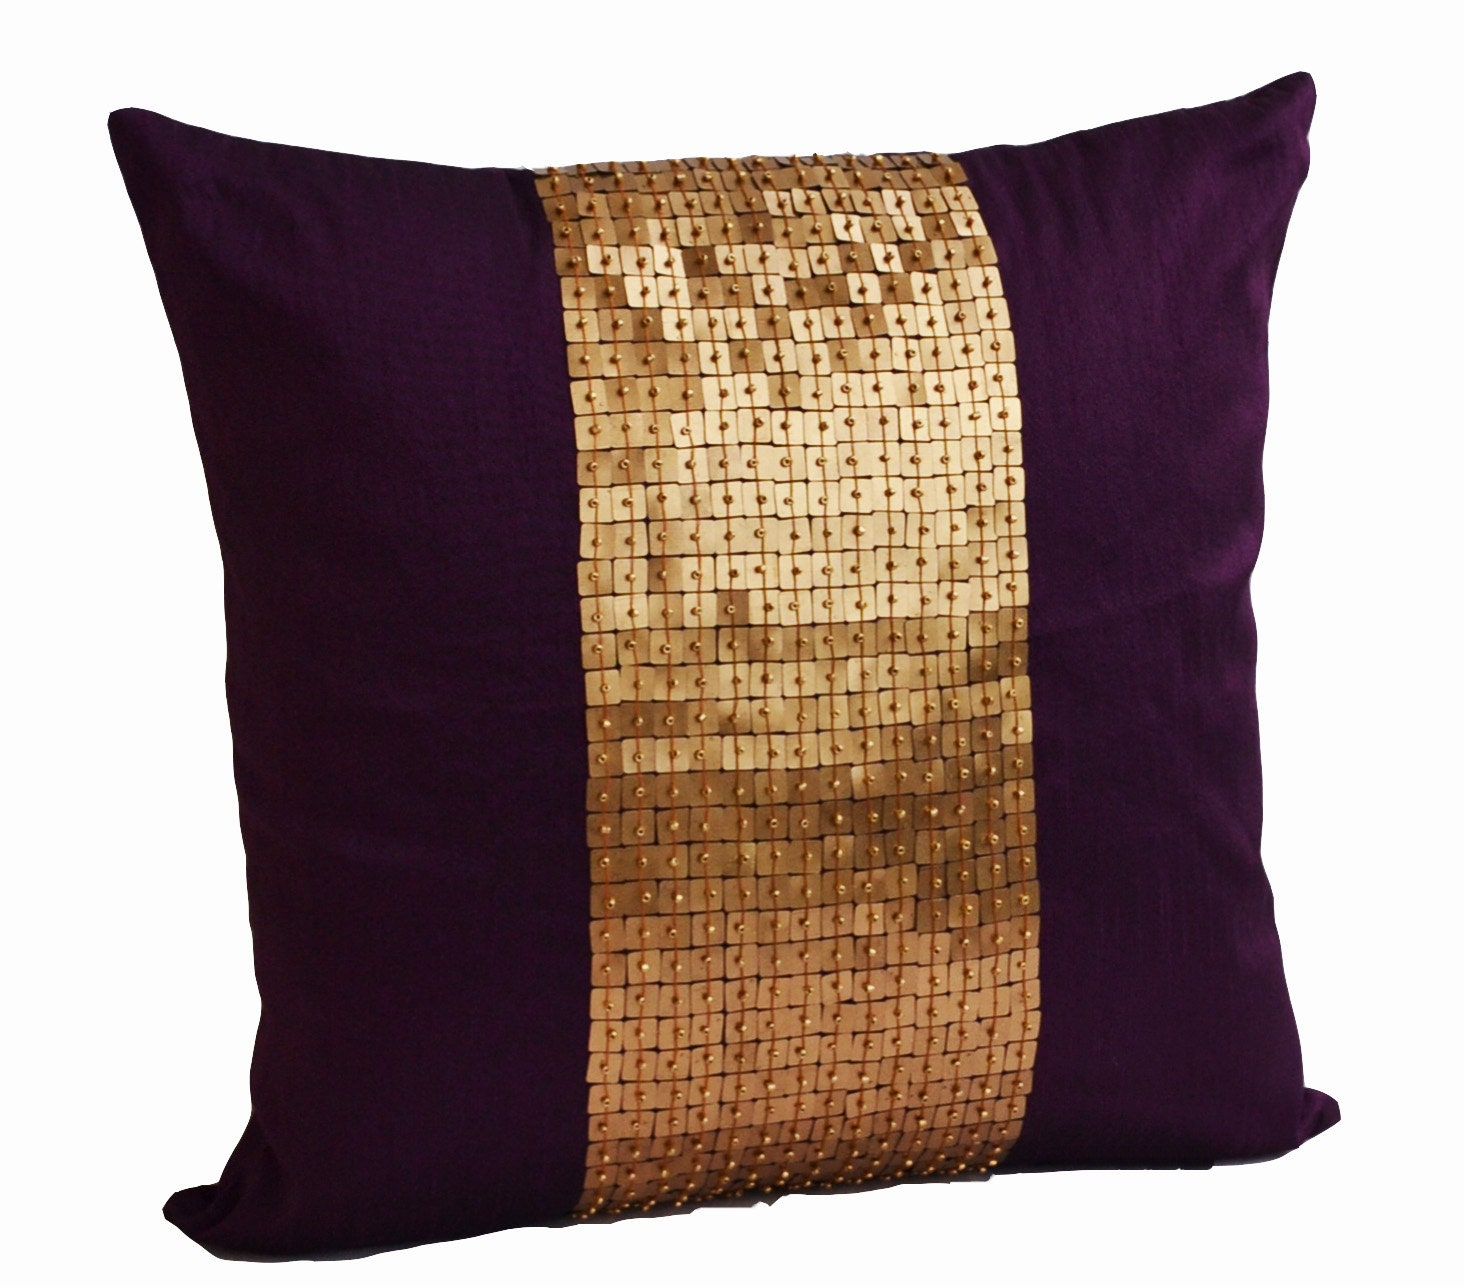 Throw Pillows Gif : Decorative Throw Pillows Purple gold color block in silk